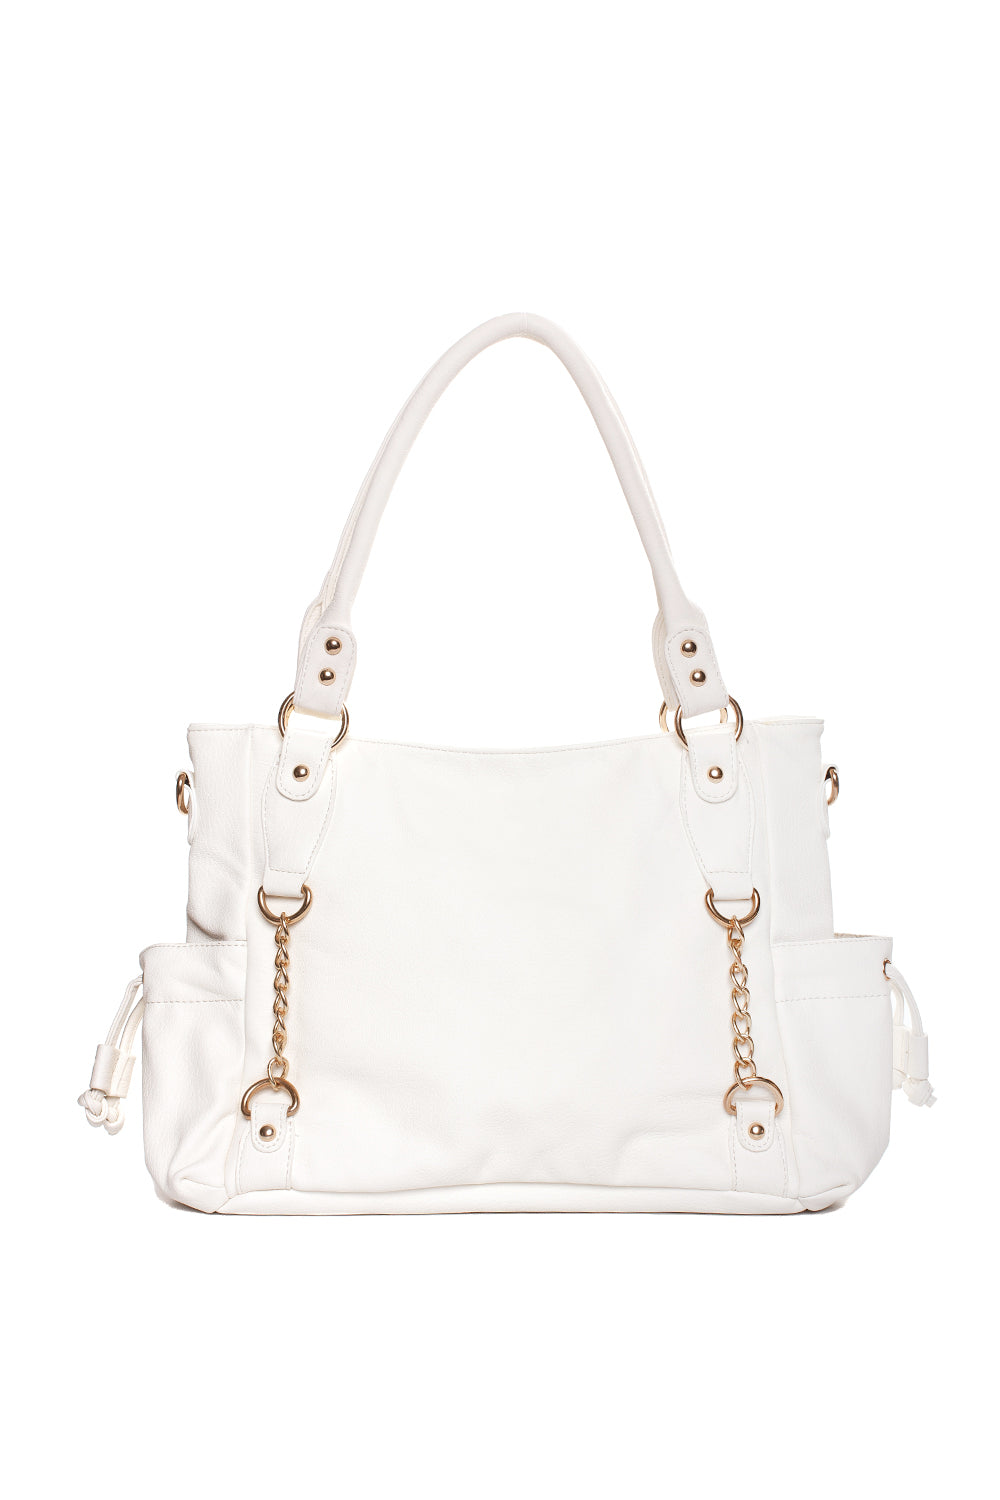 Type 1 Off White Delight Handbag